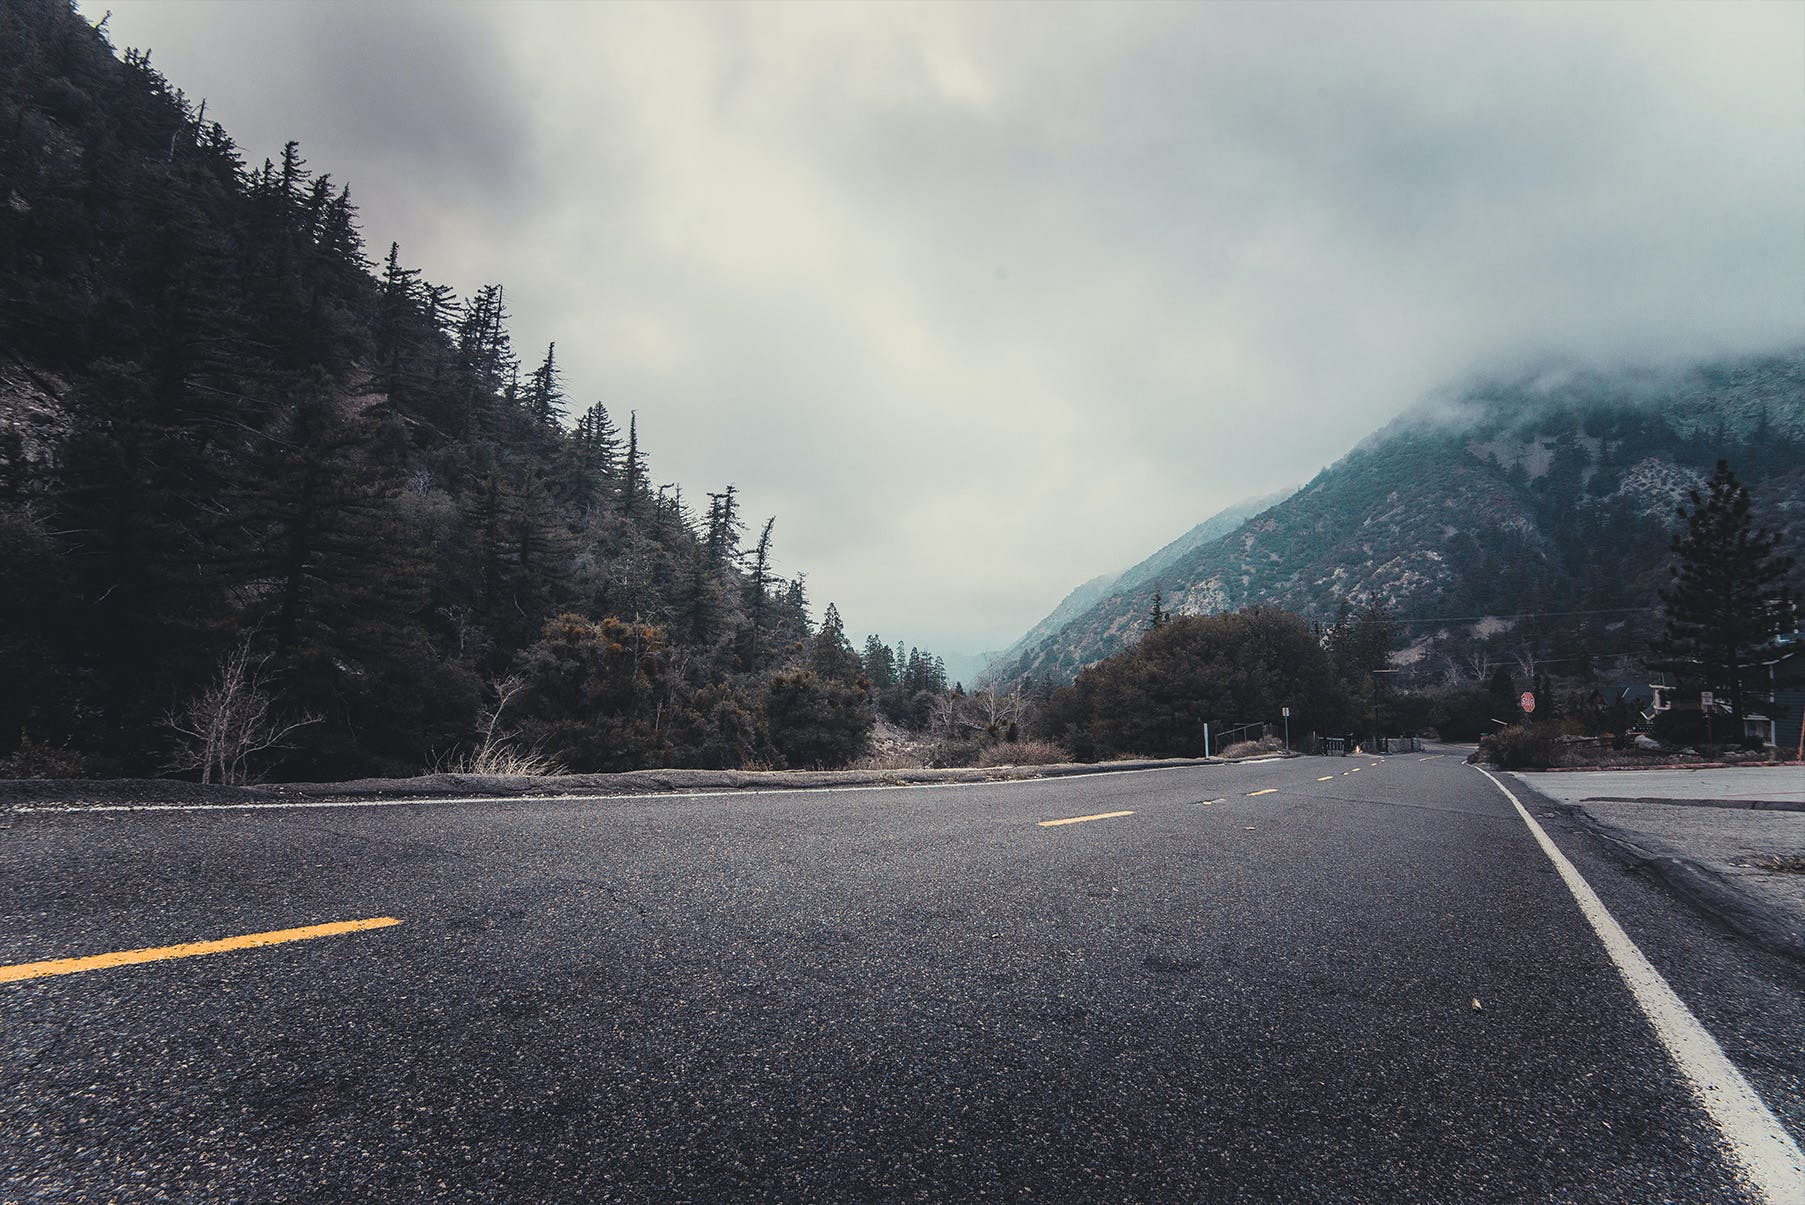 Free stock photo of road, sky, clouds, cloudy